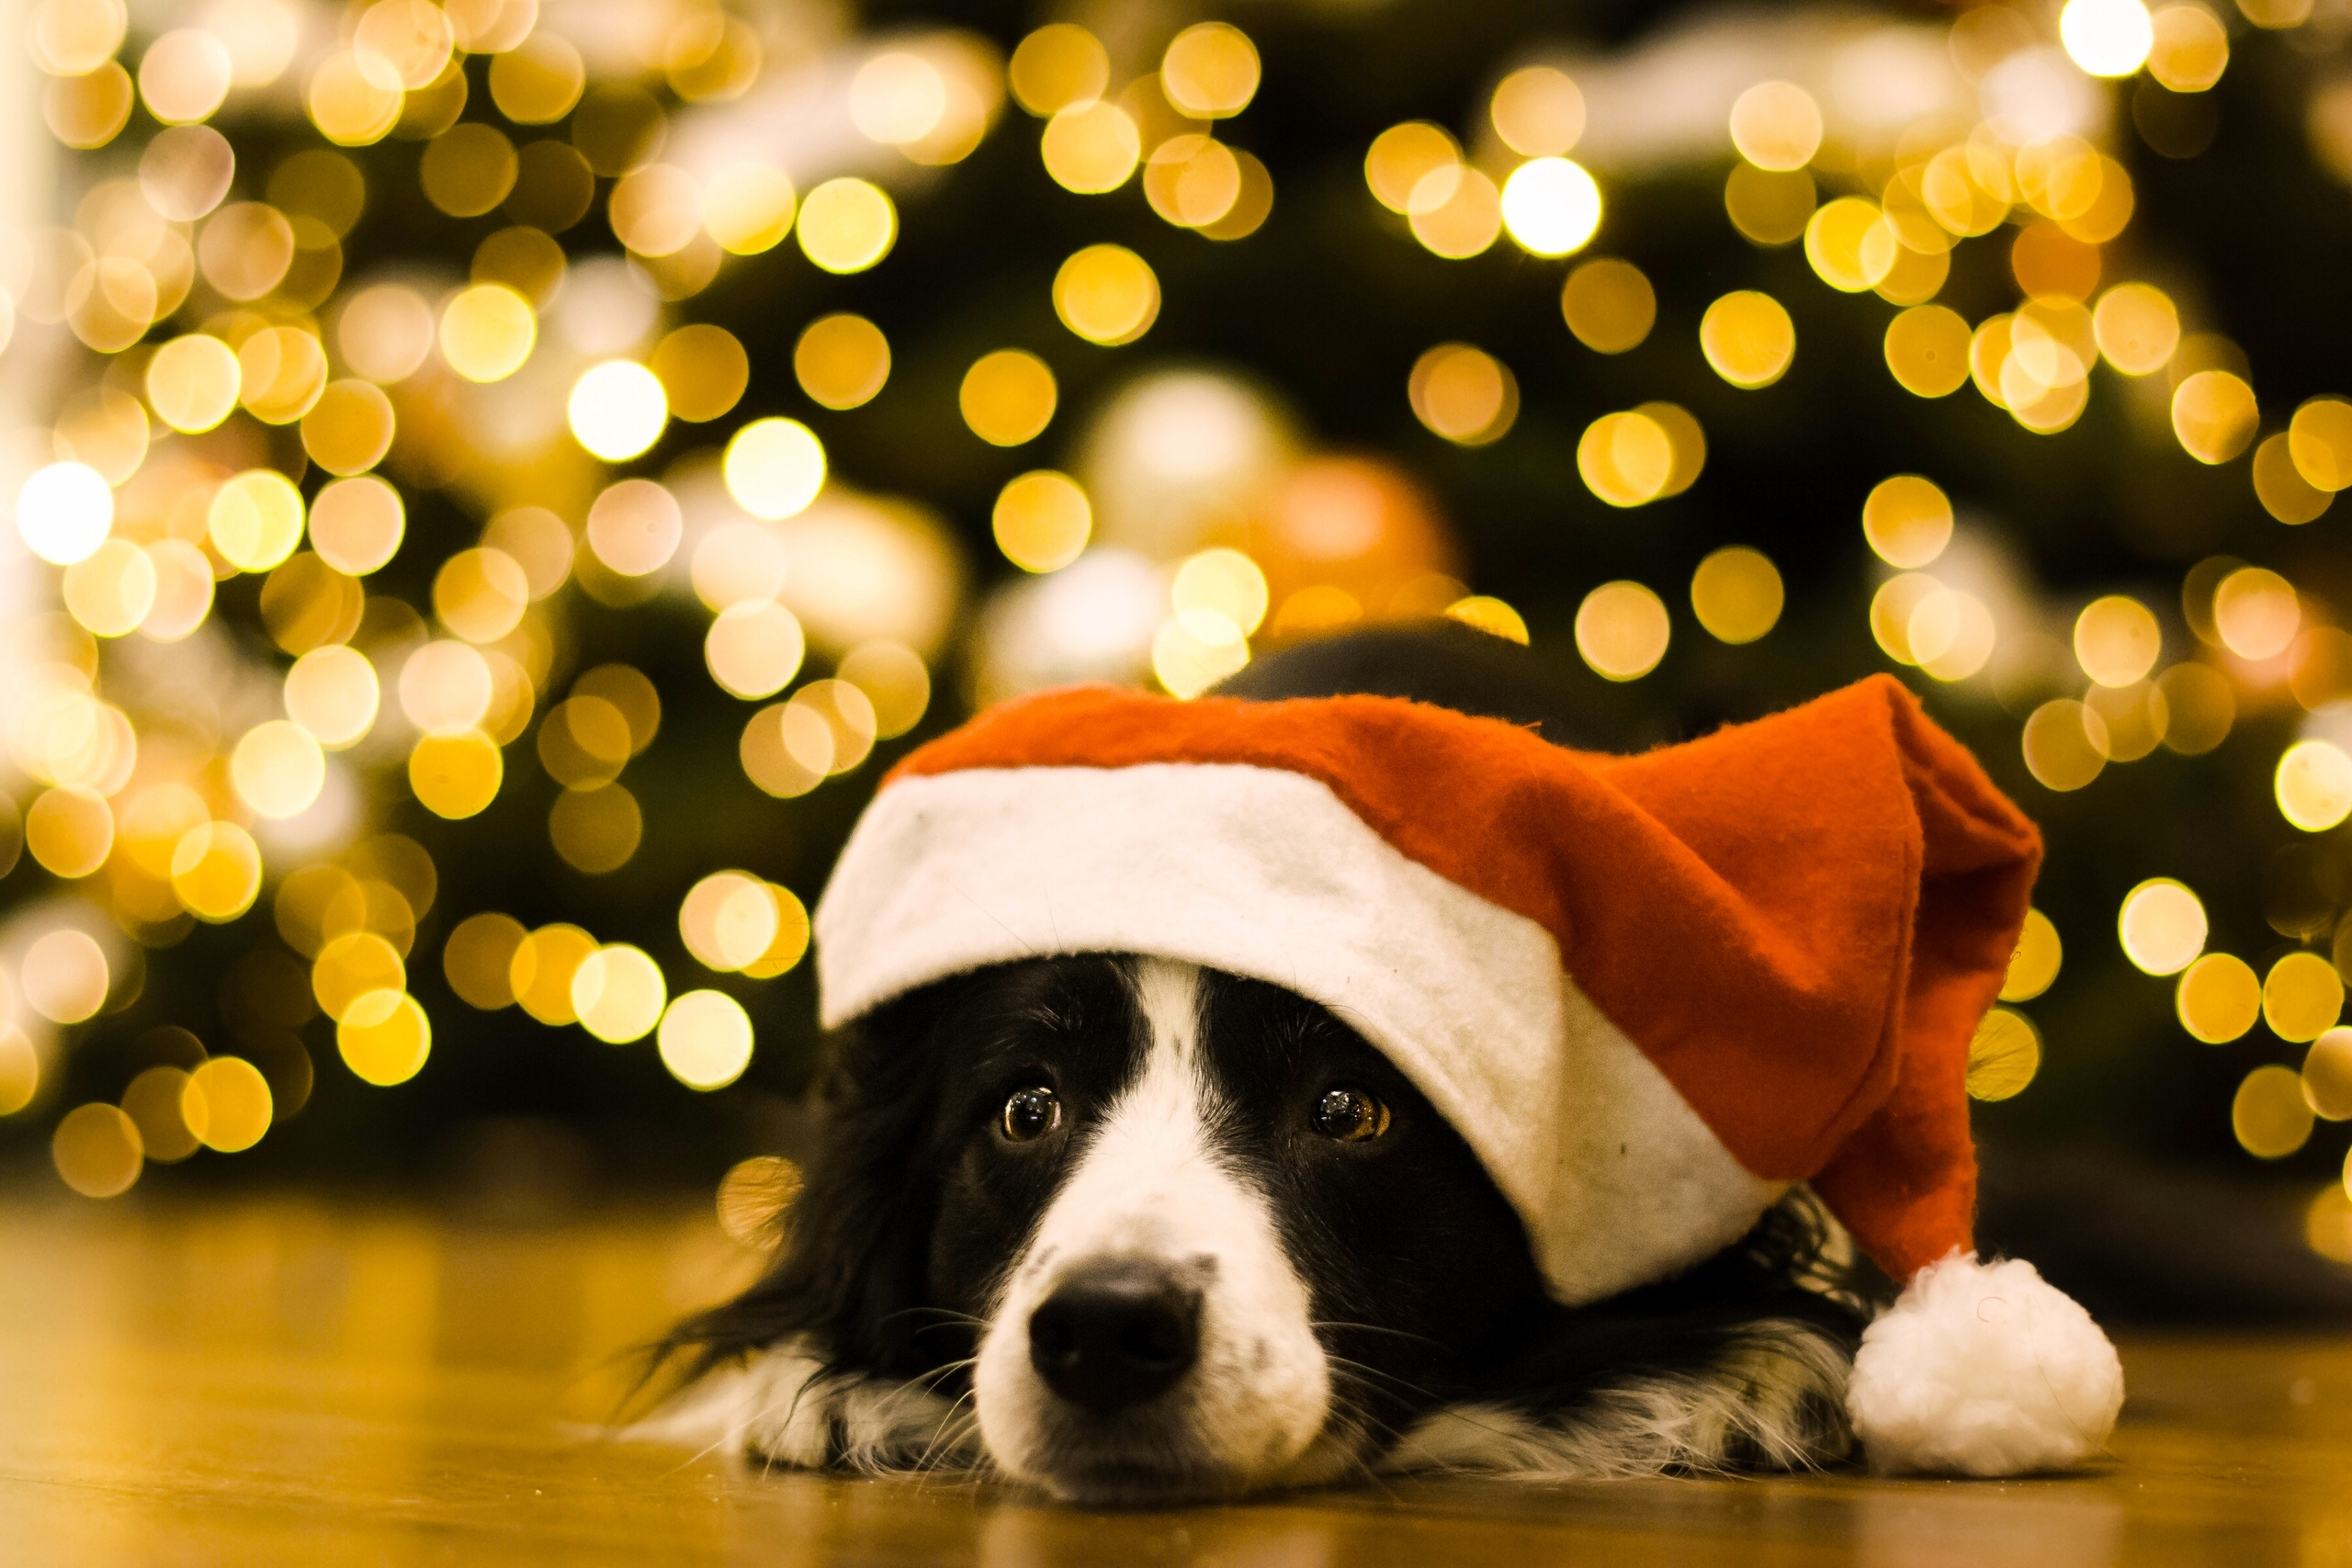 Dogs_Christmas_Border_461906